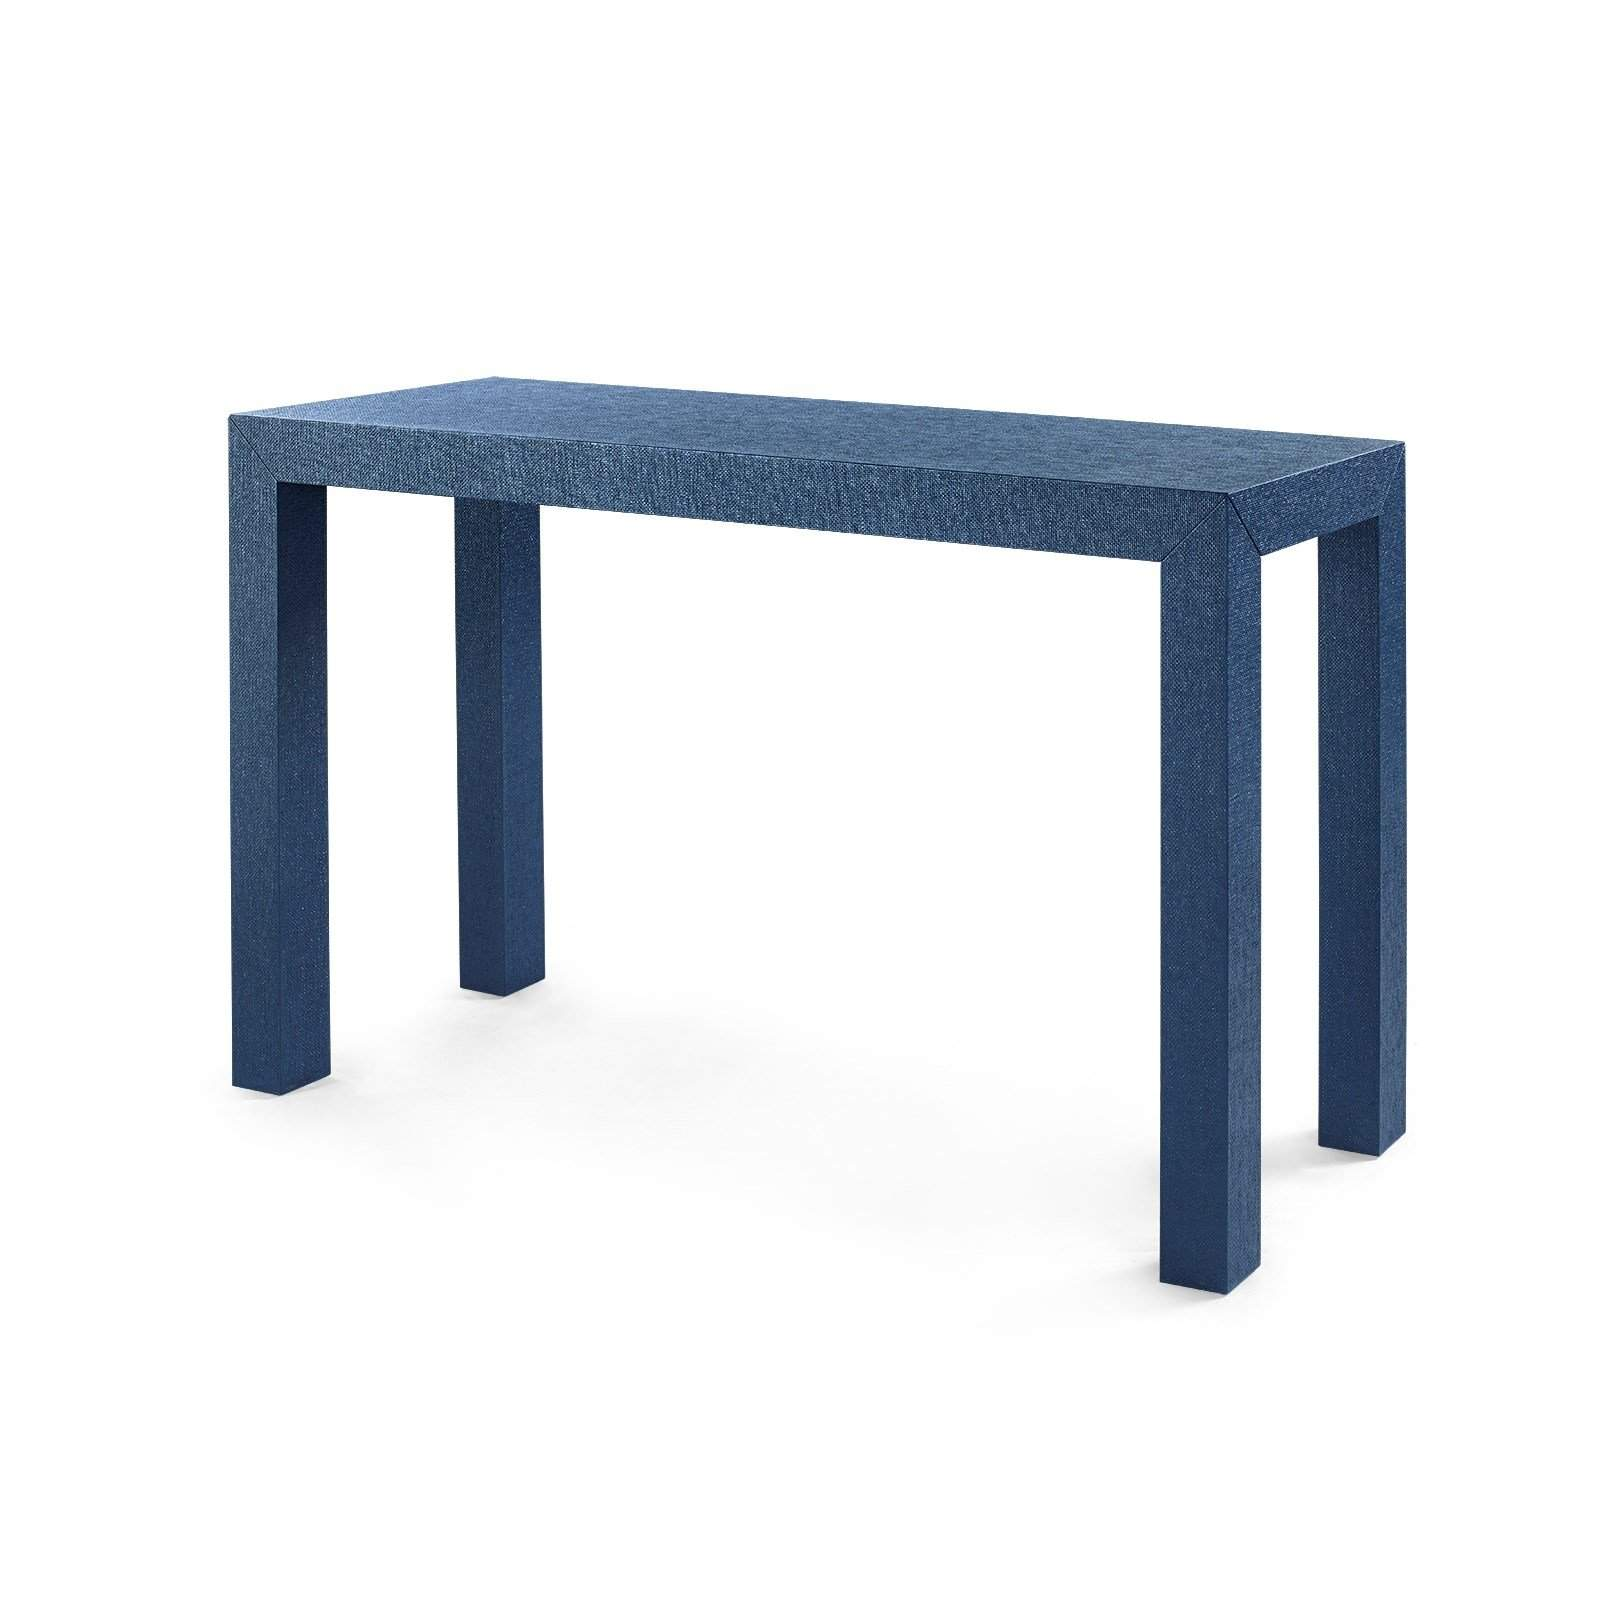 Bungalow 5 - PARSONS CONSOLE TABLE in NAVY BLUE